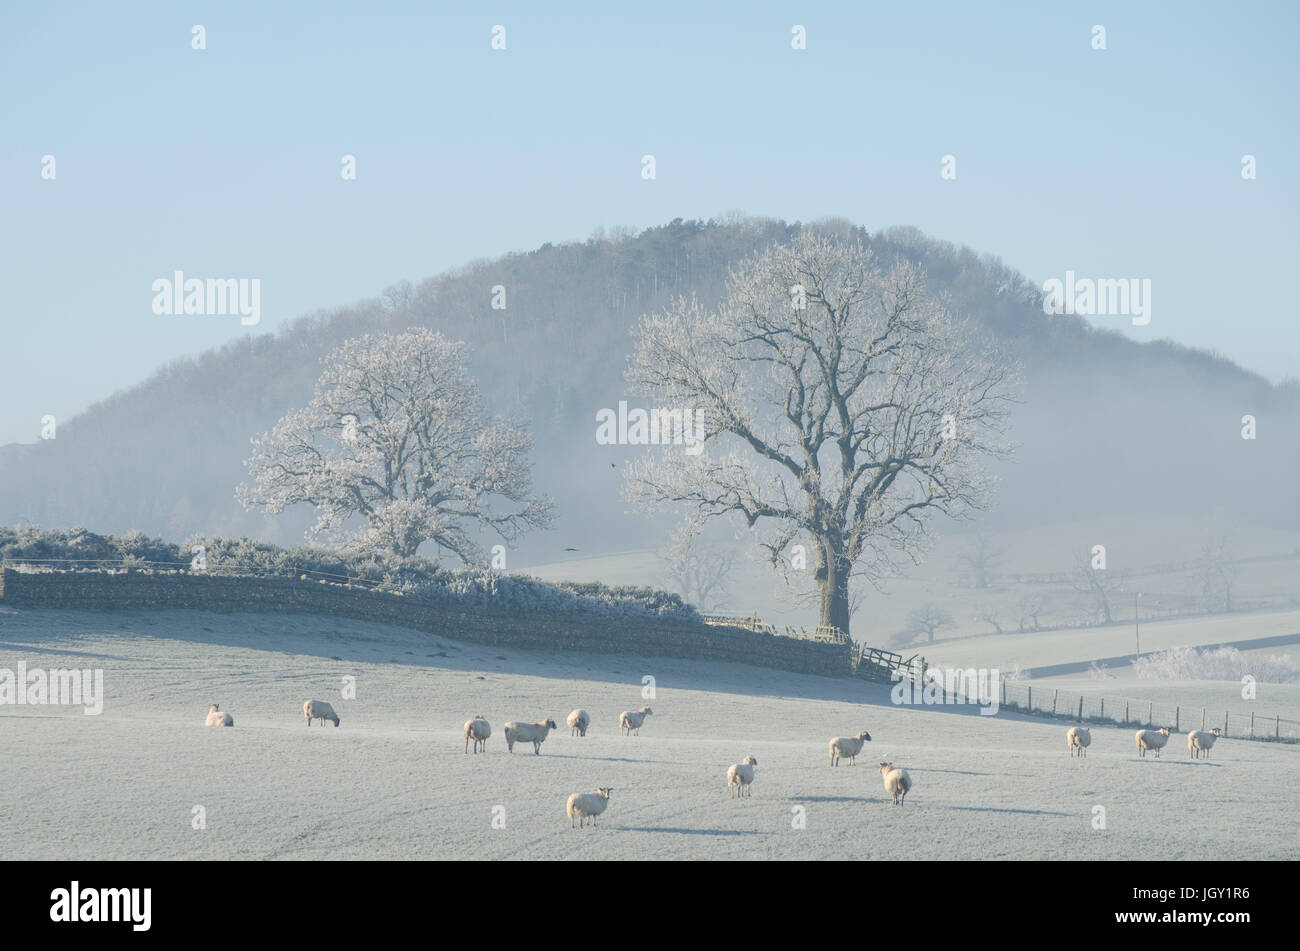 Herd of sheep in frosty field, The Lake District, UK - Stock Image